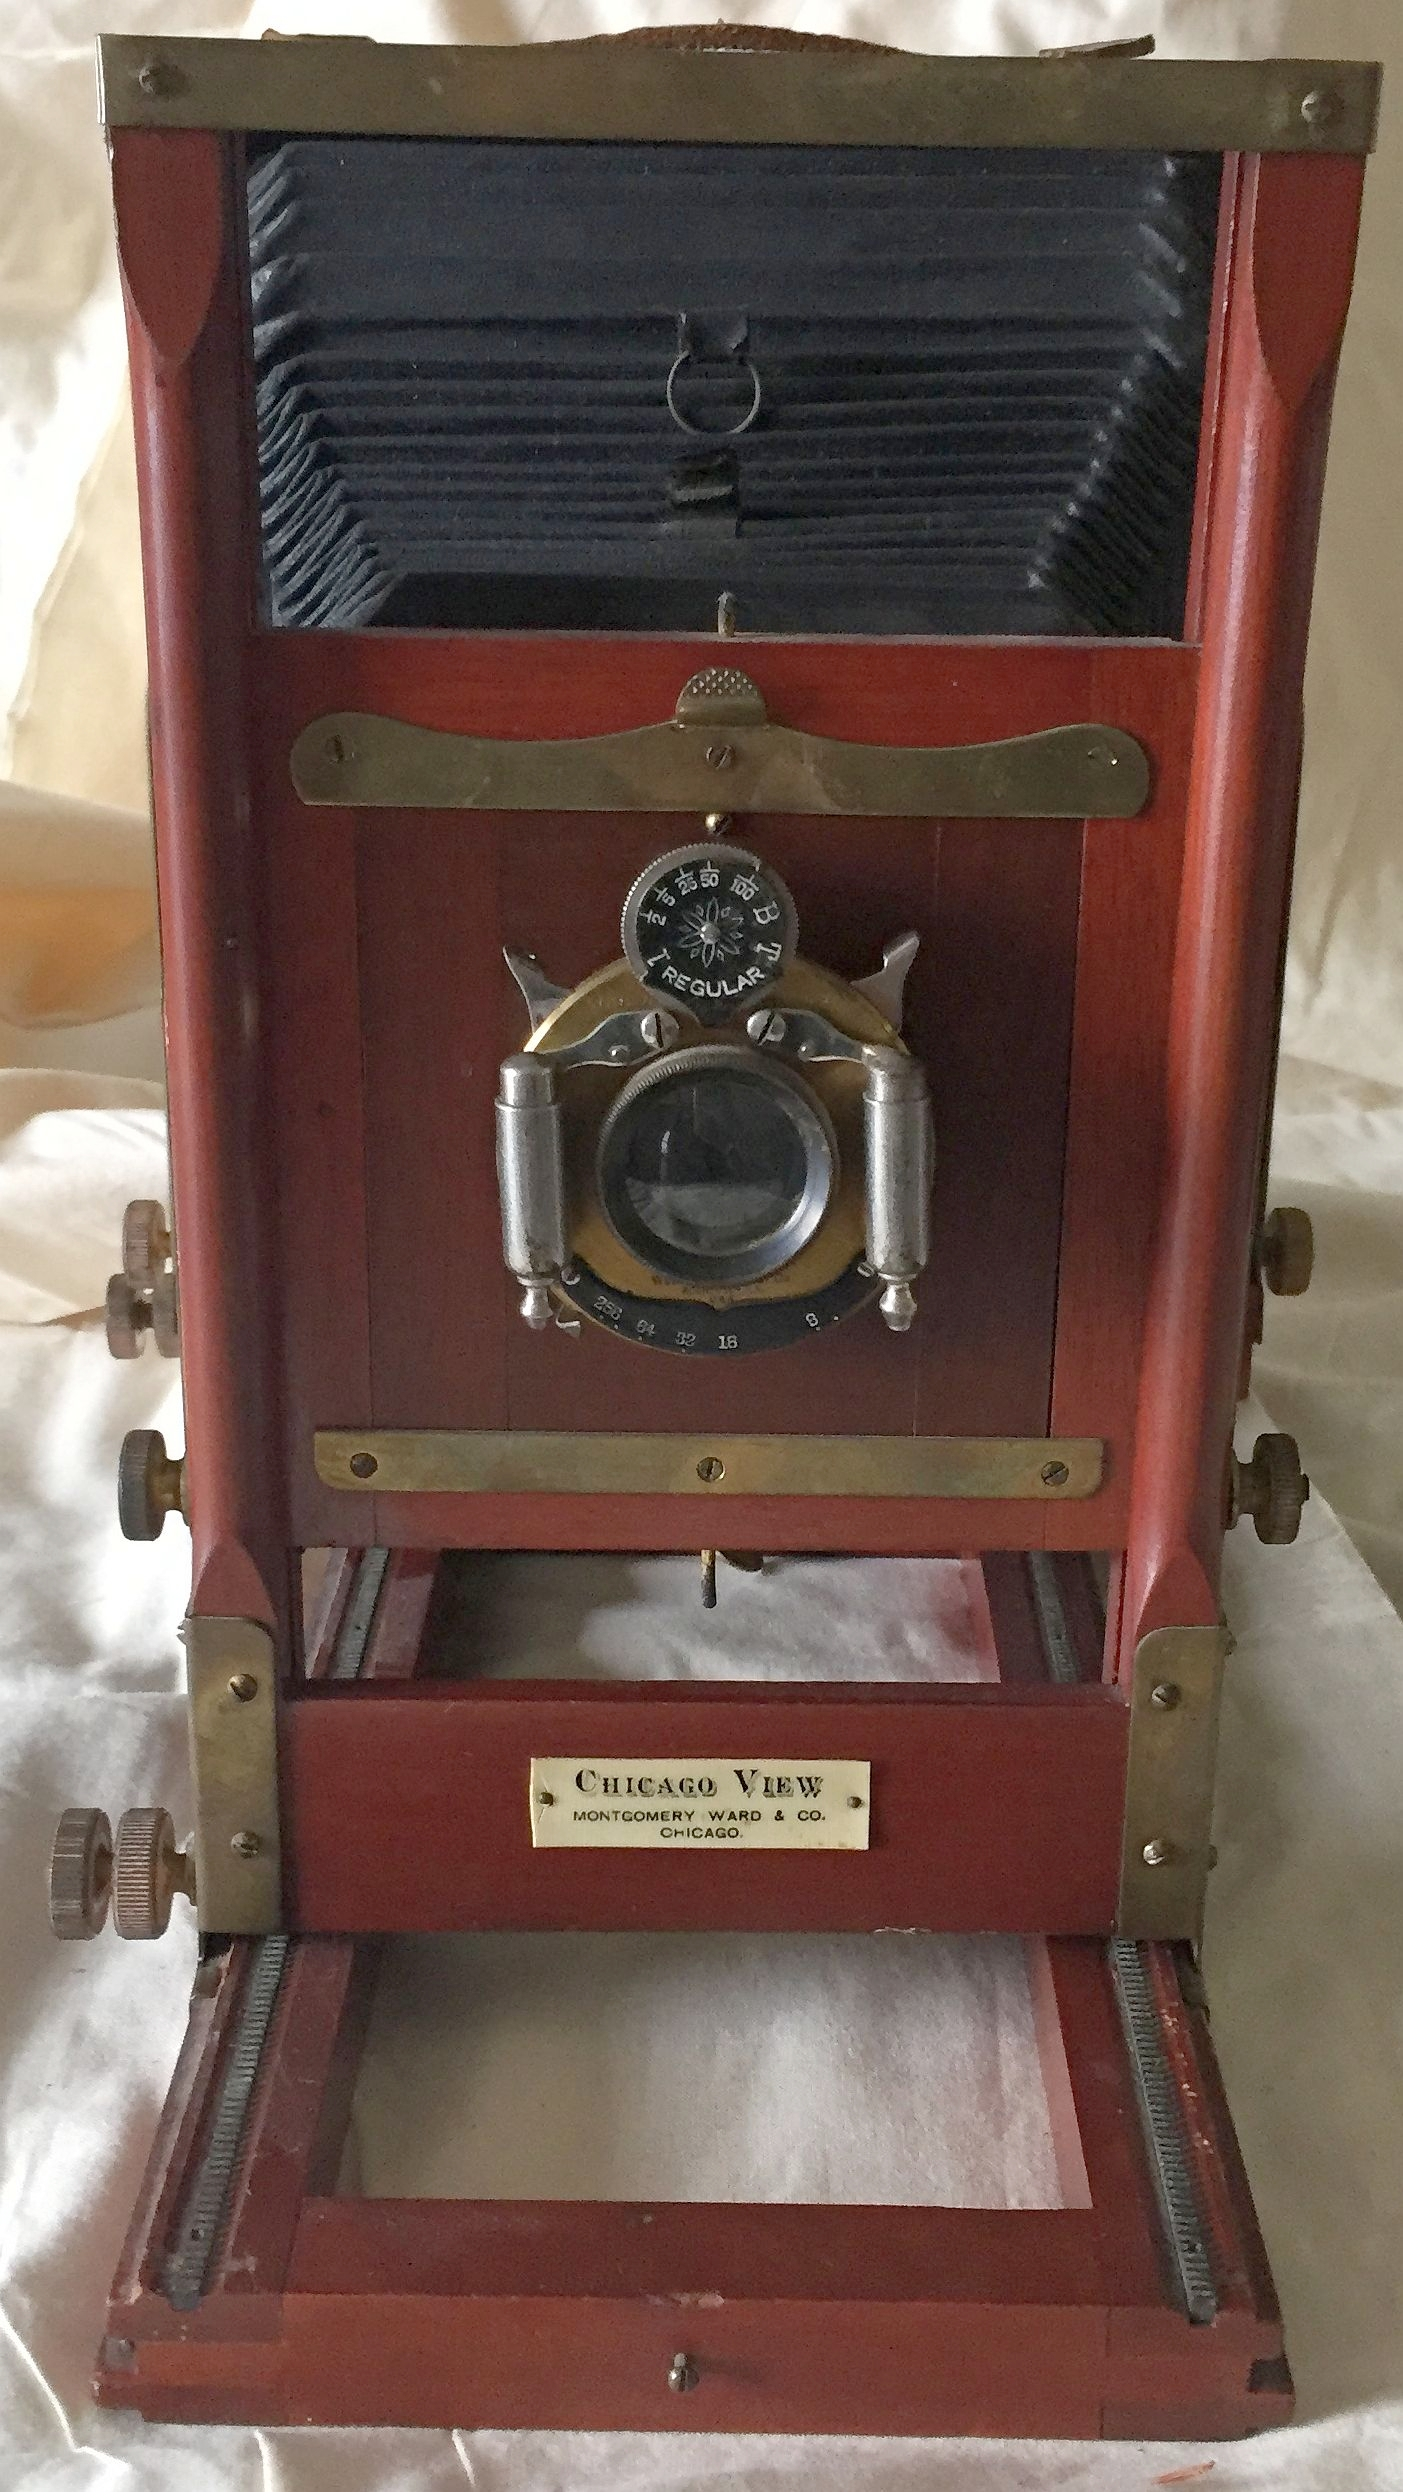 Chicago View Camera, Montgomery Ward and Co., 1905, Gift of Mr. Don Hutchinson, Collection of The Grace Museum